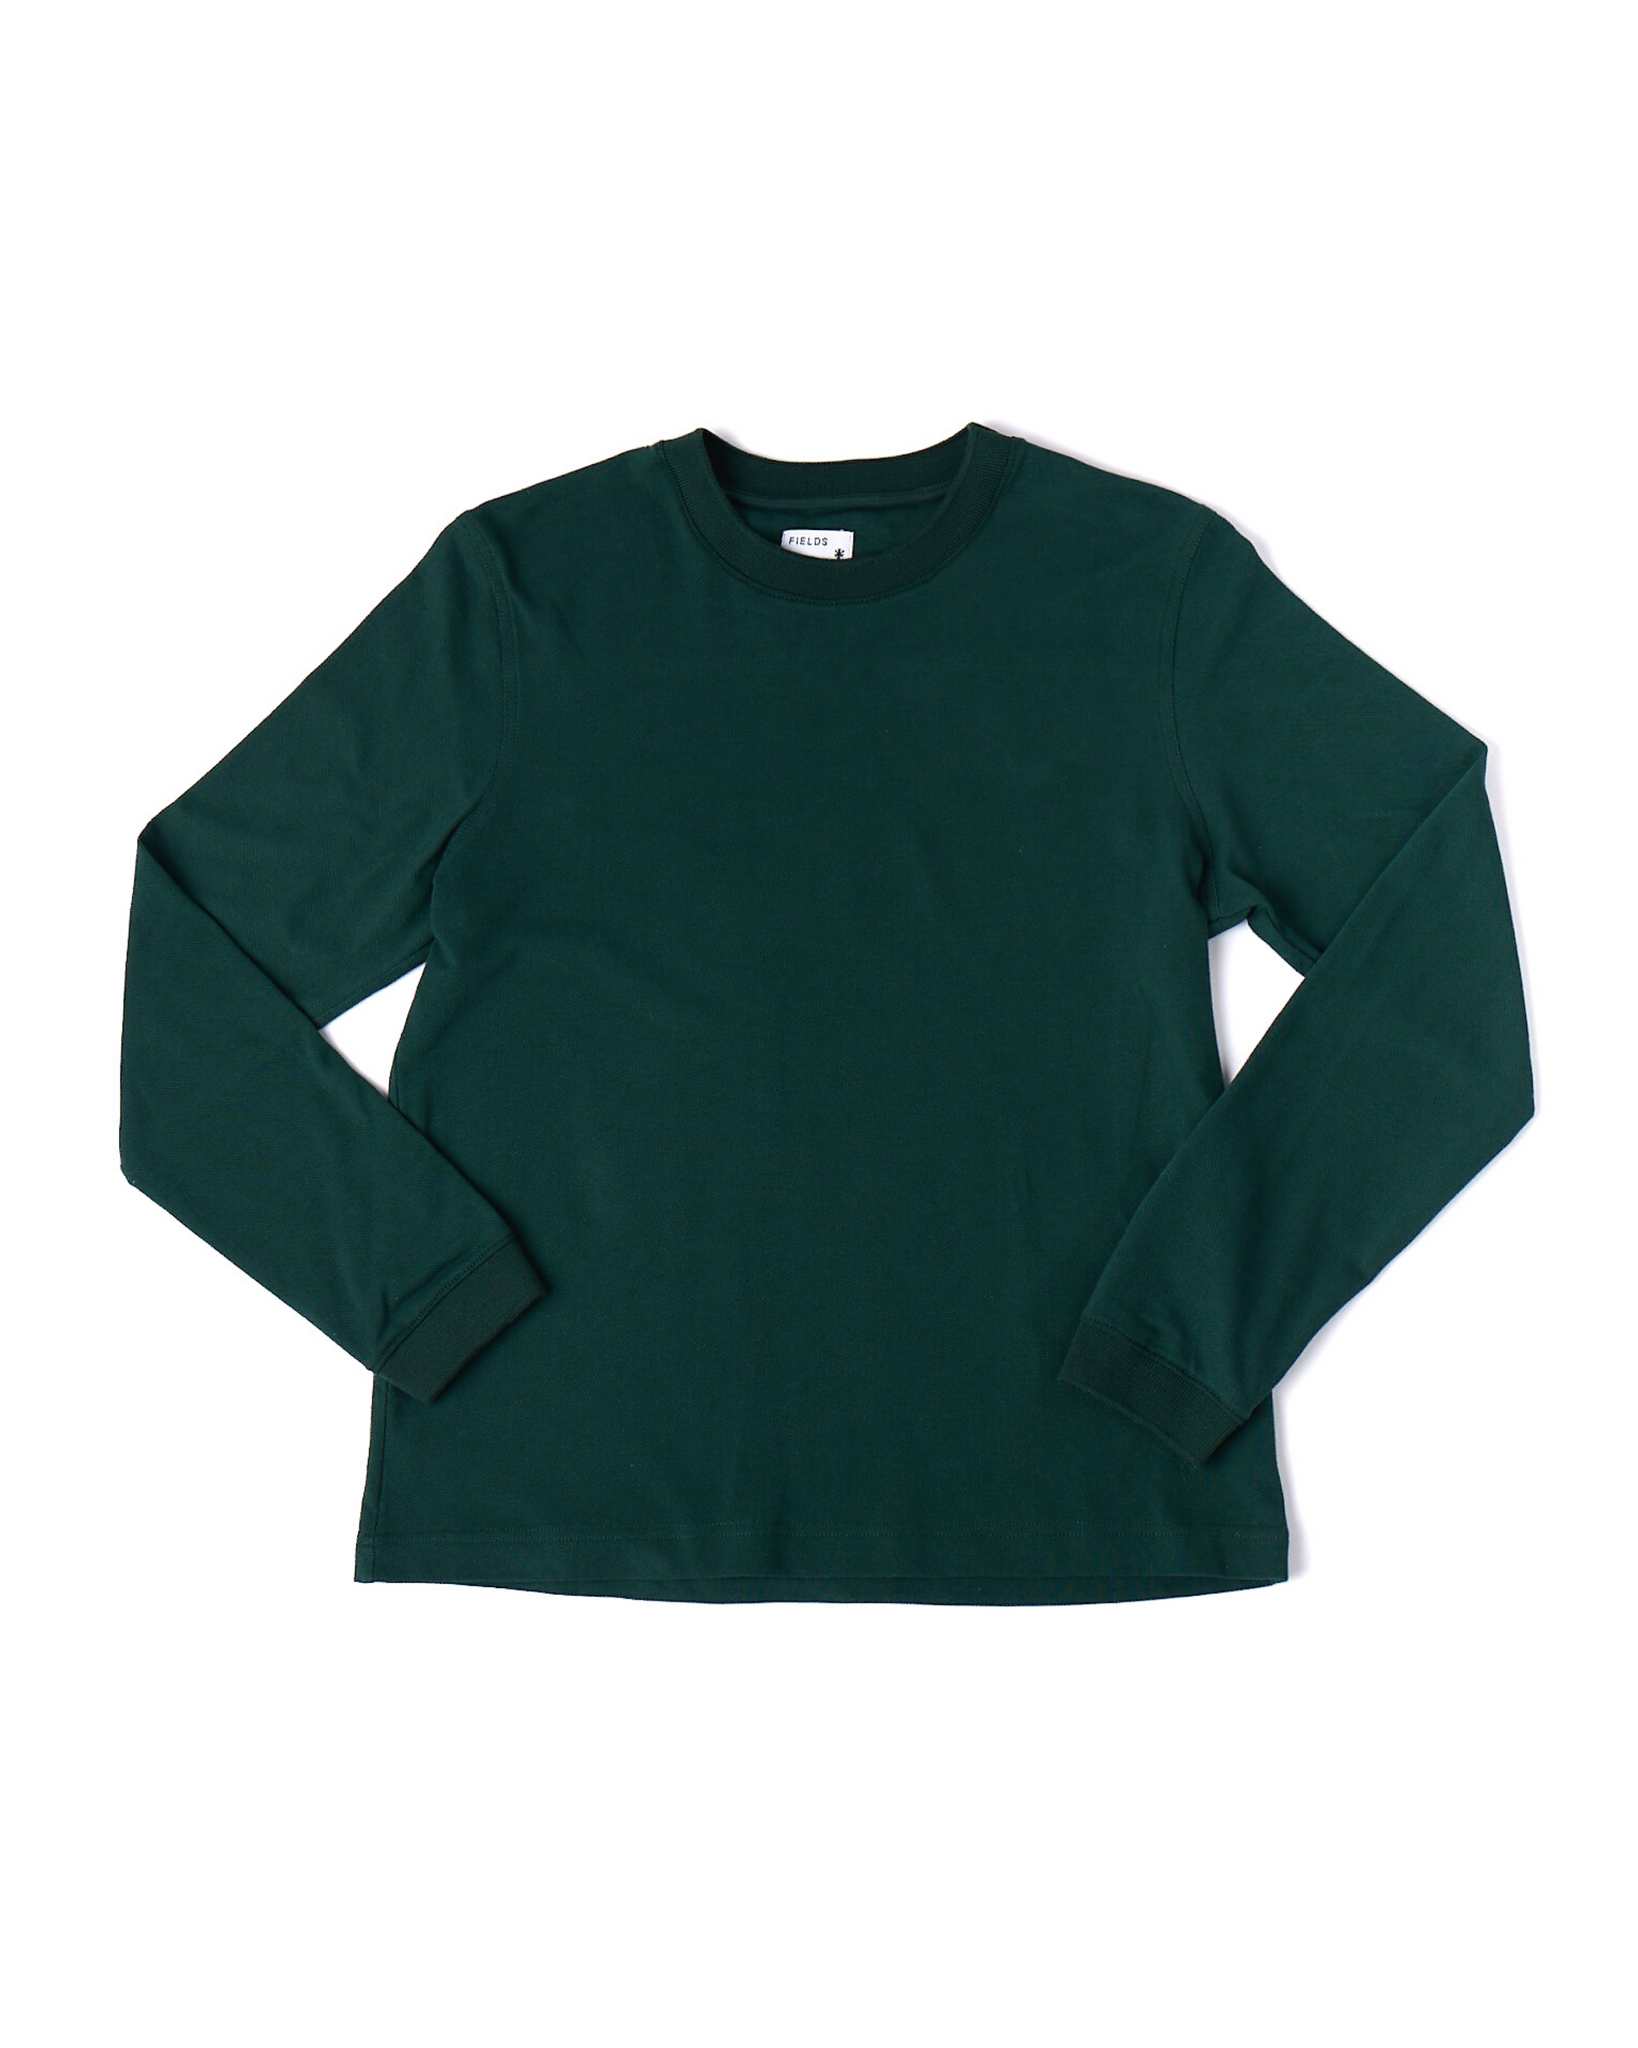 The Cotton Long Sleeve Pique tee in Pine Grove